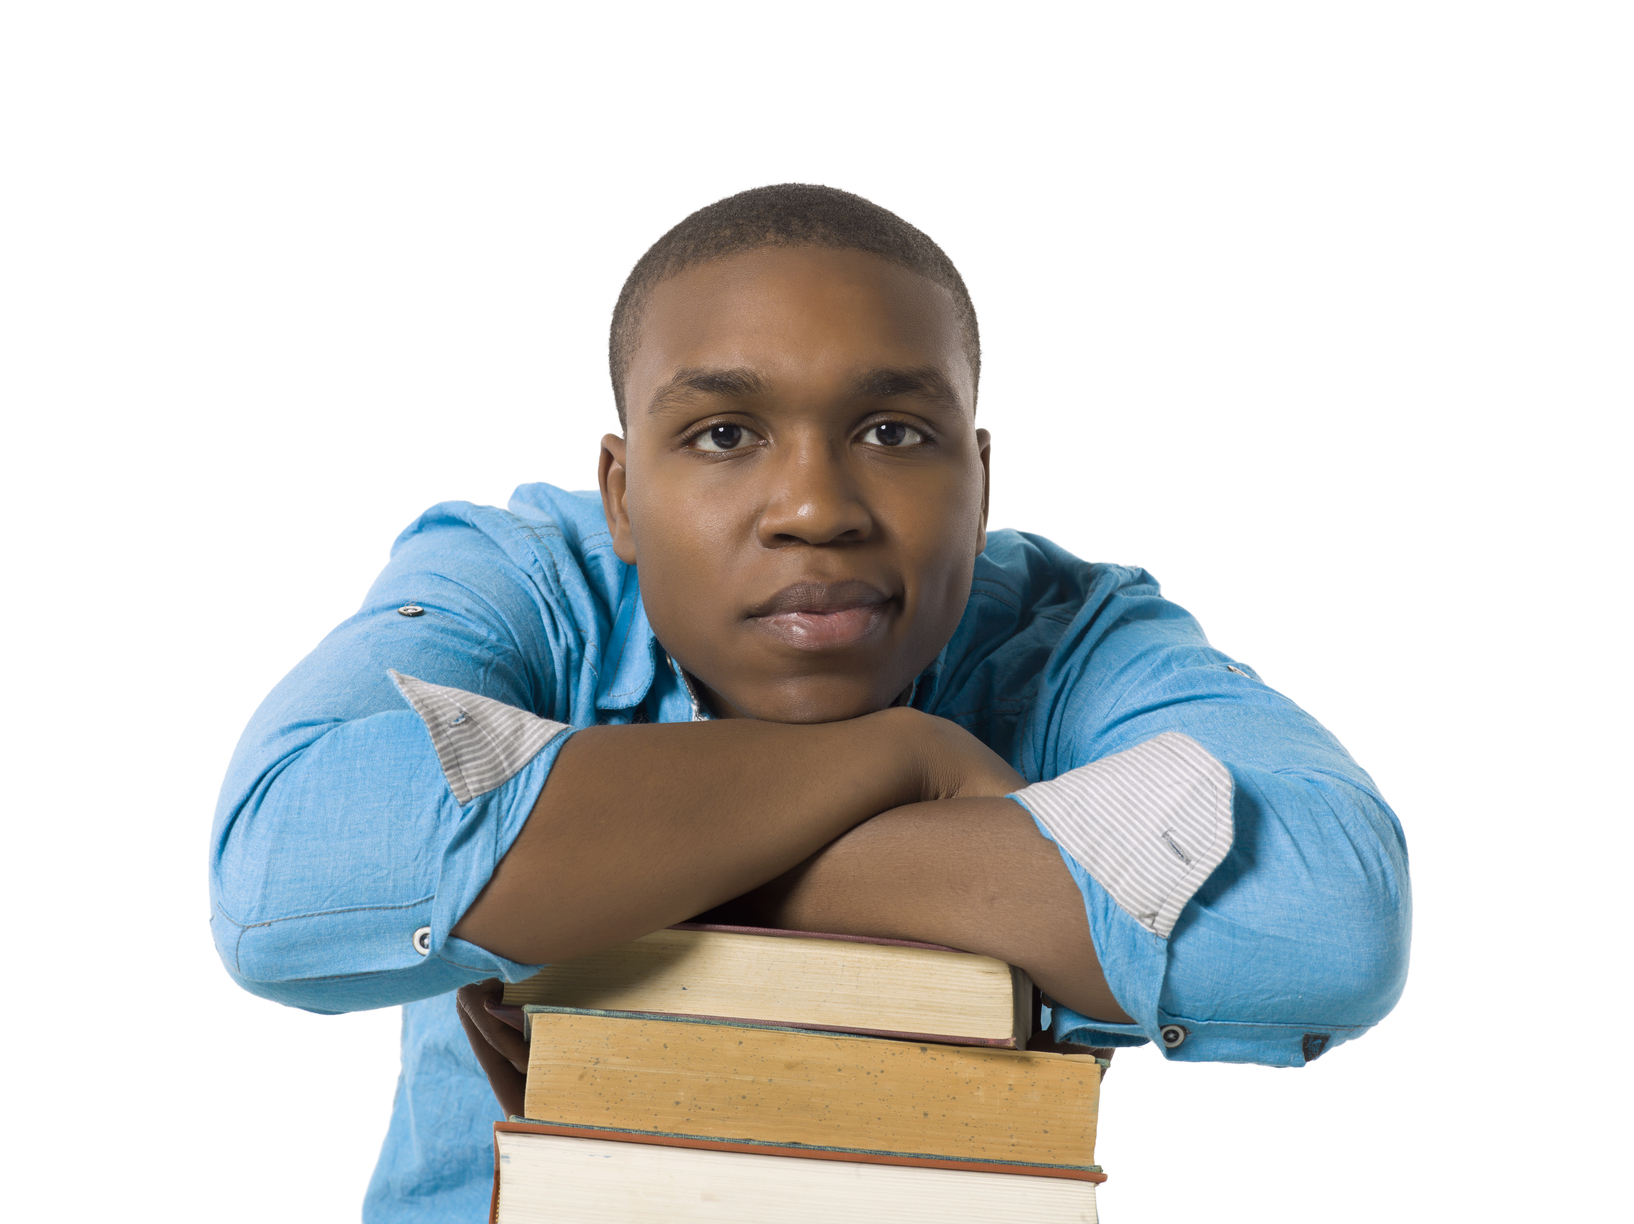 Racism on college campuses impacts minority students college experience and mental health according to a  recent study  of about 1500 undergraduates.